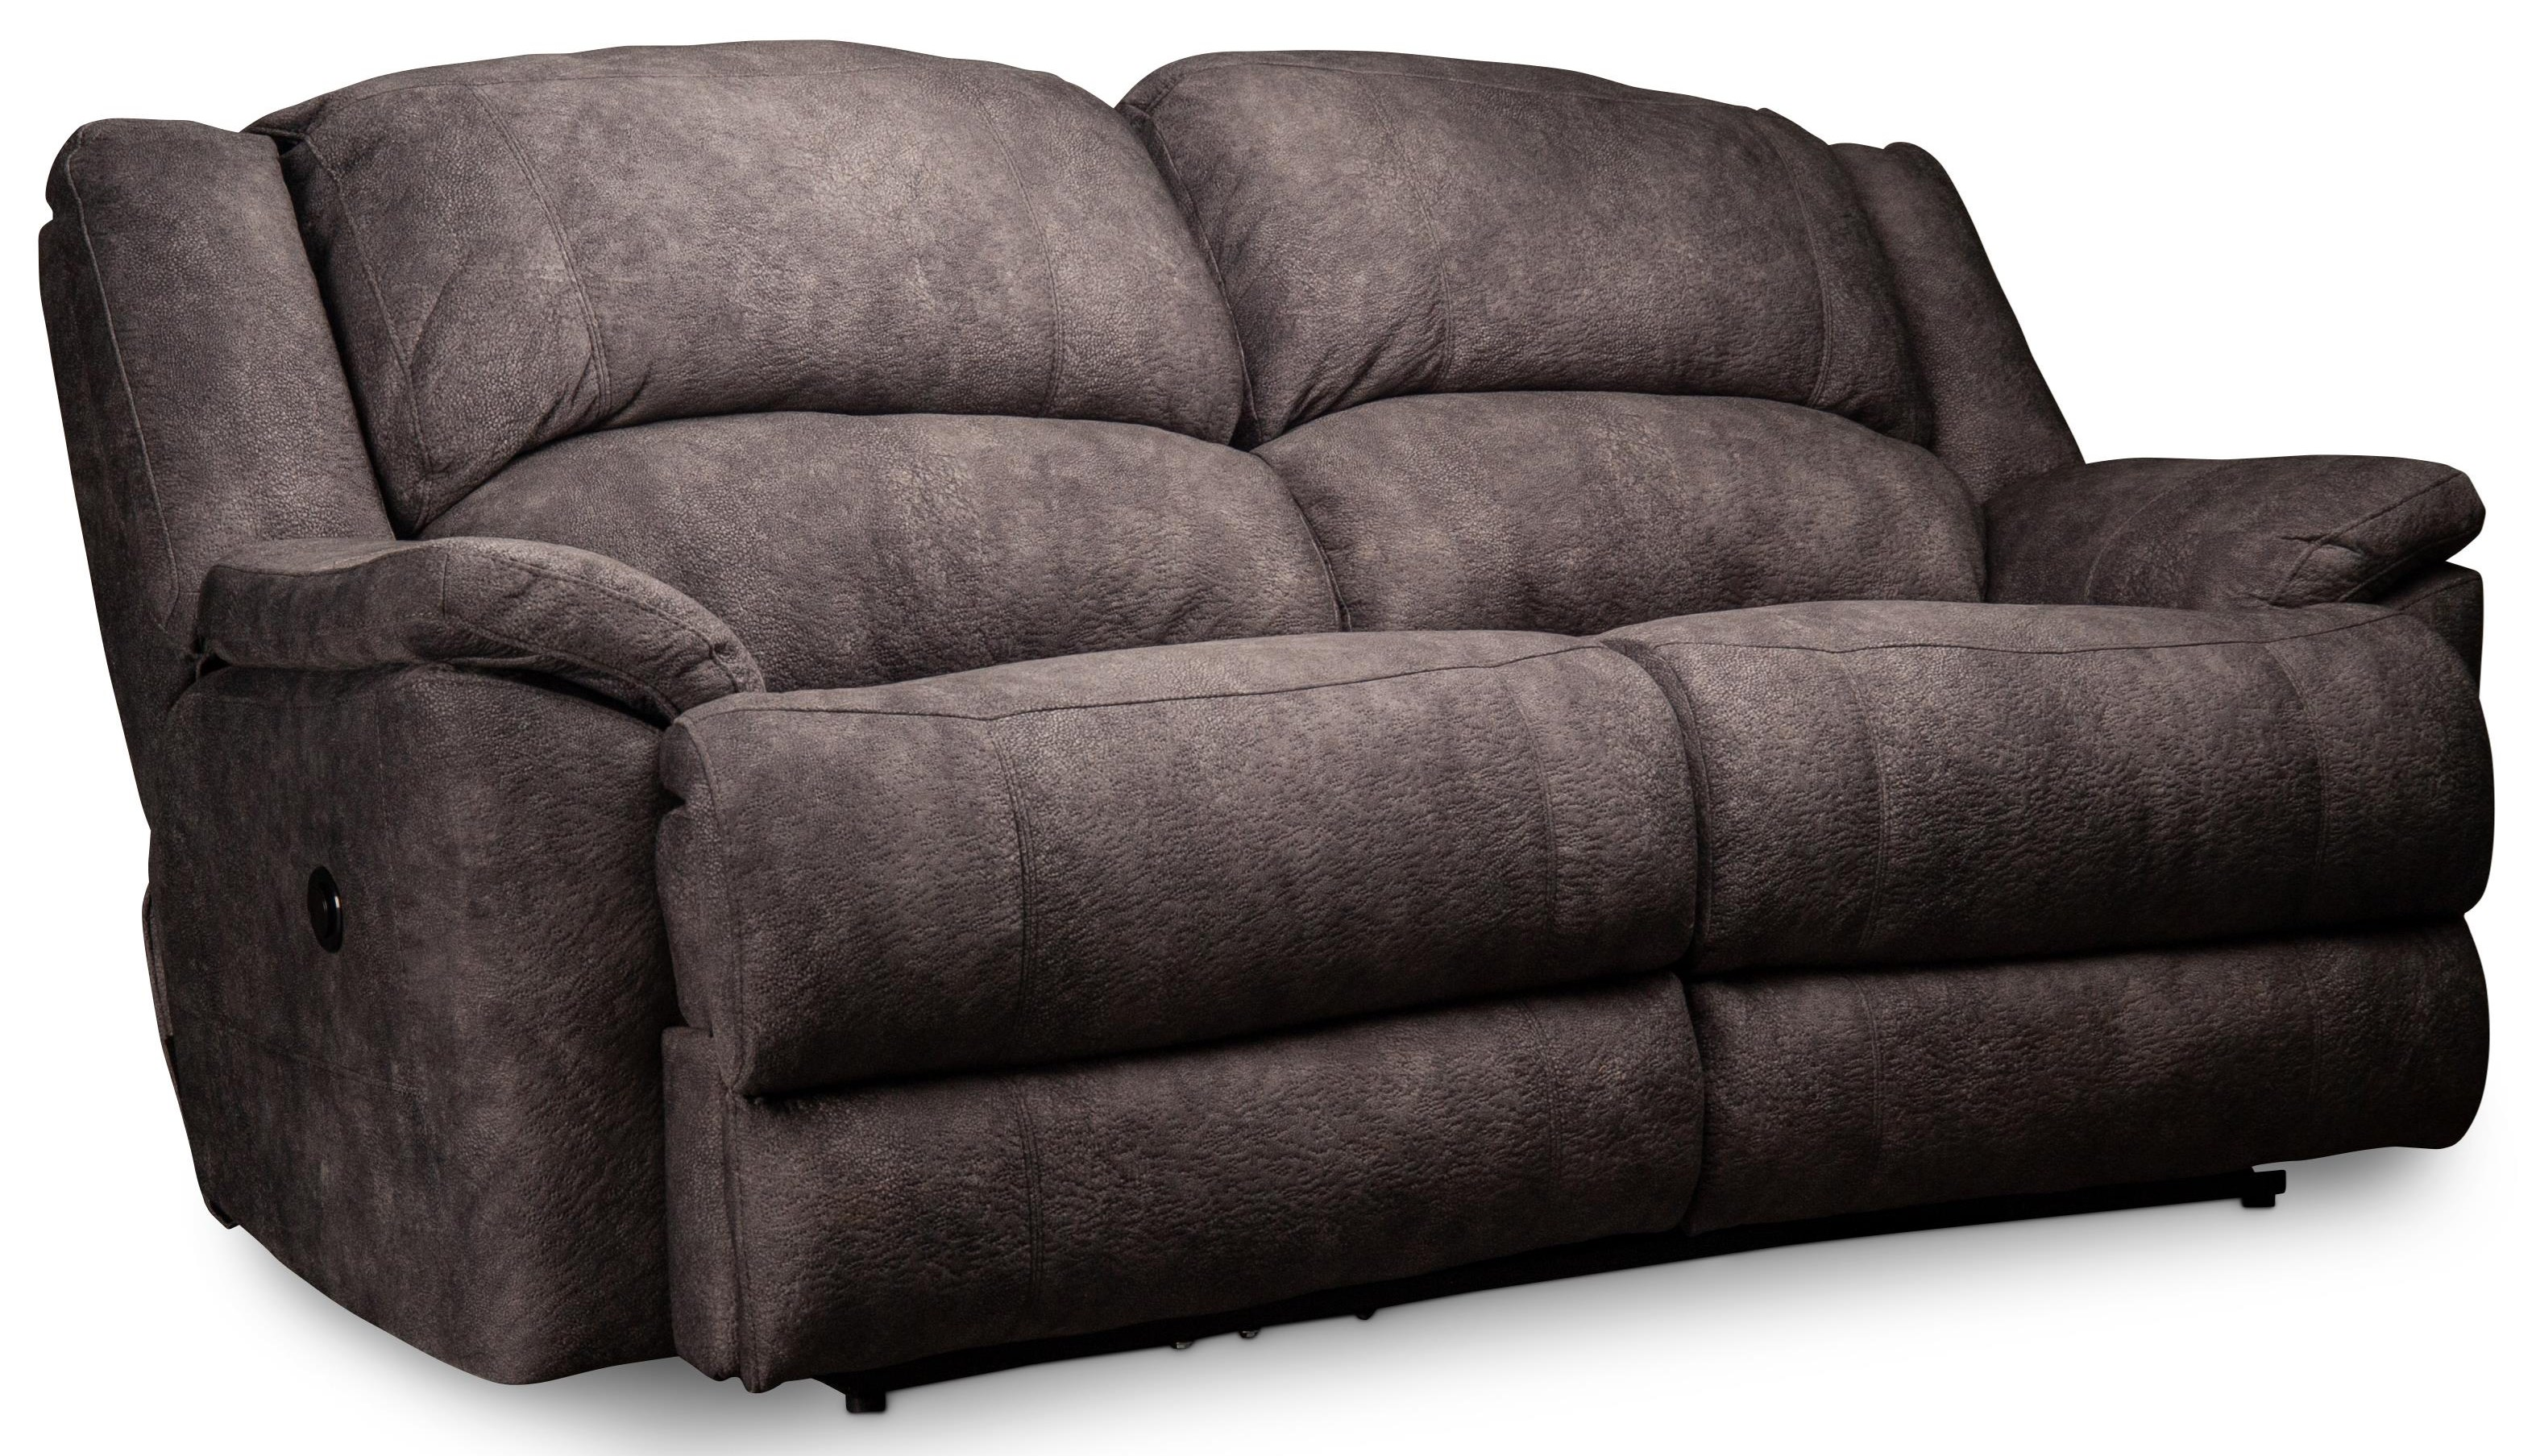 Bastion Bastion Power Reclining Sofa by HomeStretch at Morris Home